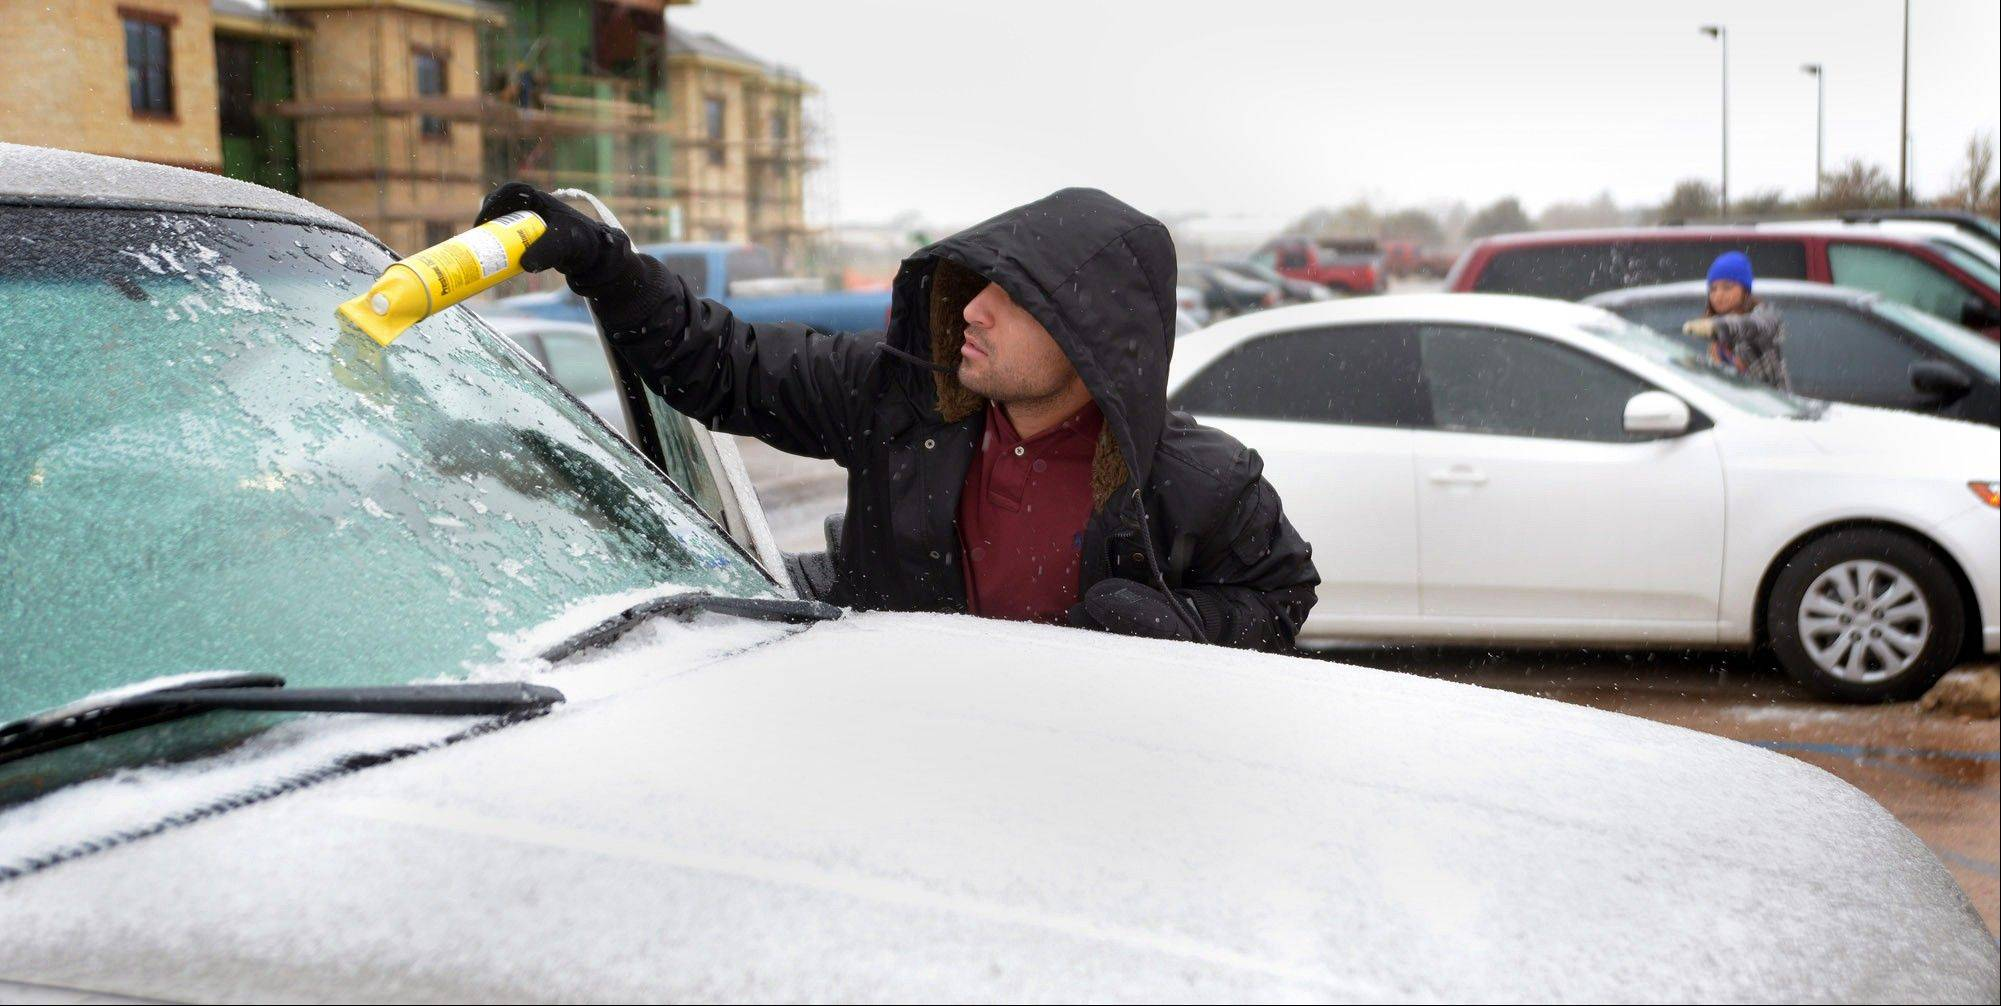 George Lara, a graduate student at the University of Texas, uses a deicer to clear the windshield of his car on Thursday, Dec. 5, 2013, in Odessa, Texas.